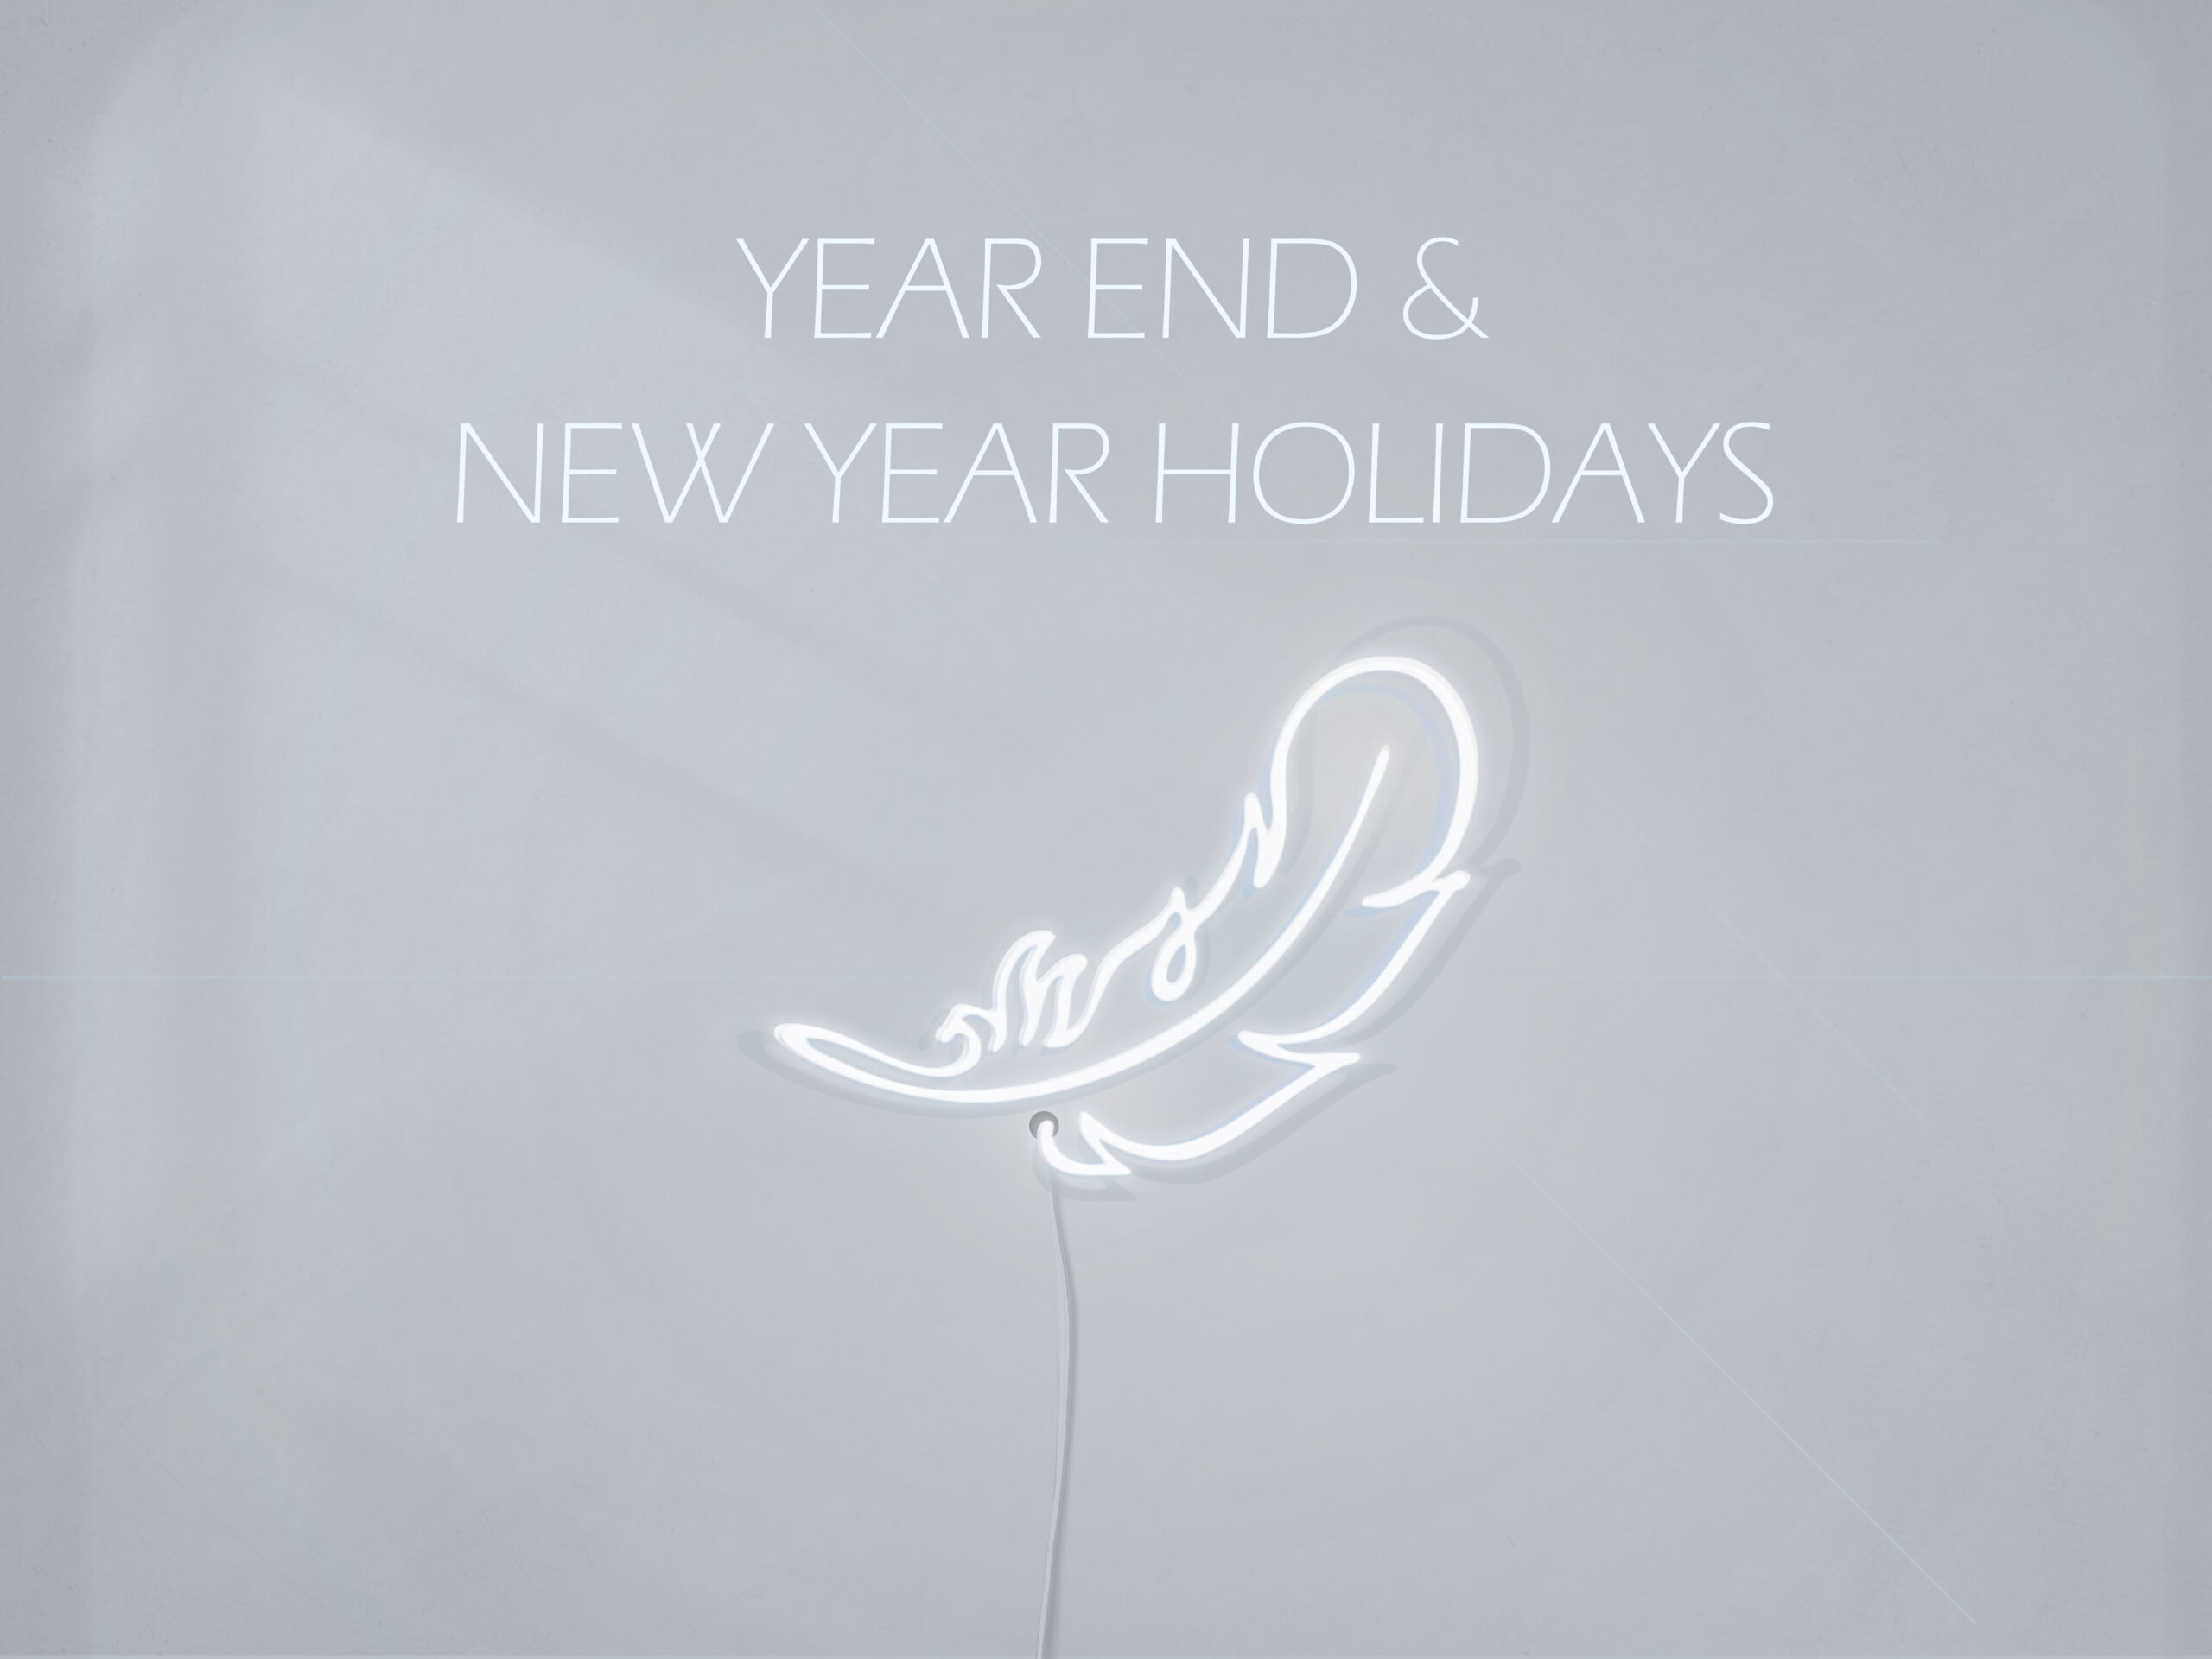 YEAR END & NEW YEAR HOLIDAYS